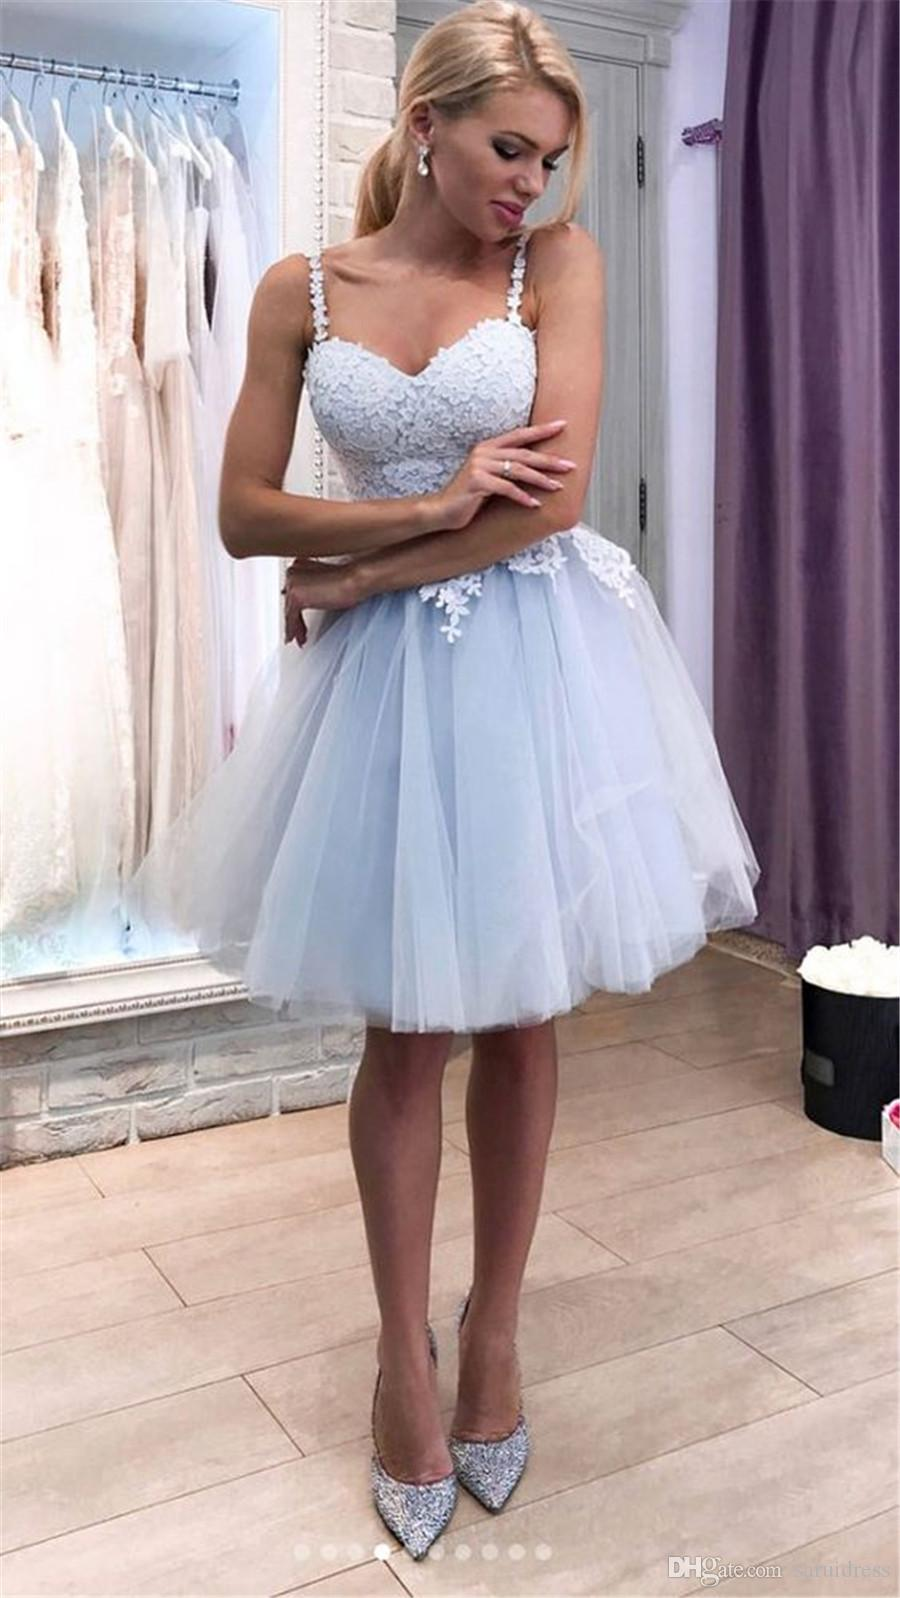 26c63813d234b Ice Sky Blue Tulle Spaghetti Straps Short Graduation Homecoming Dresses  Short Prom Dress With Lace Appliques Reals Lulus Dress Reception Dresses  From ...